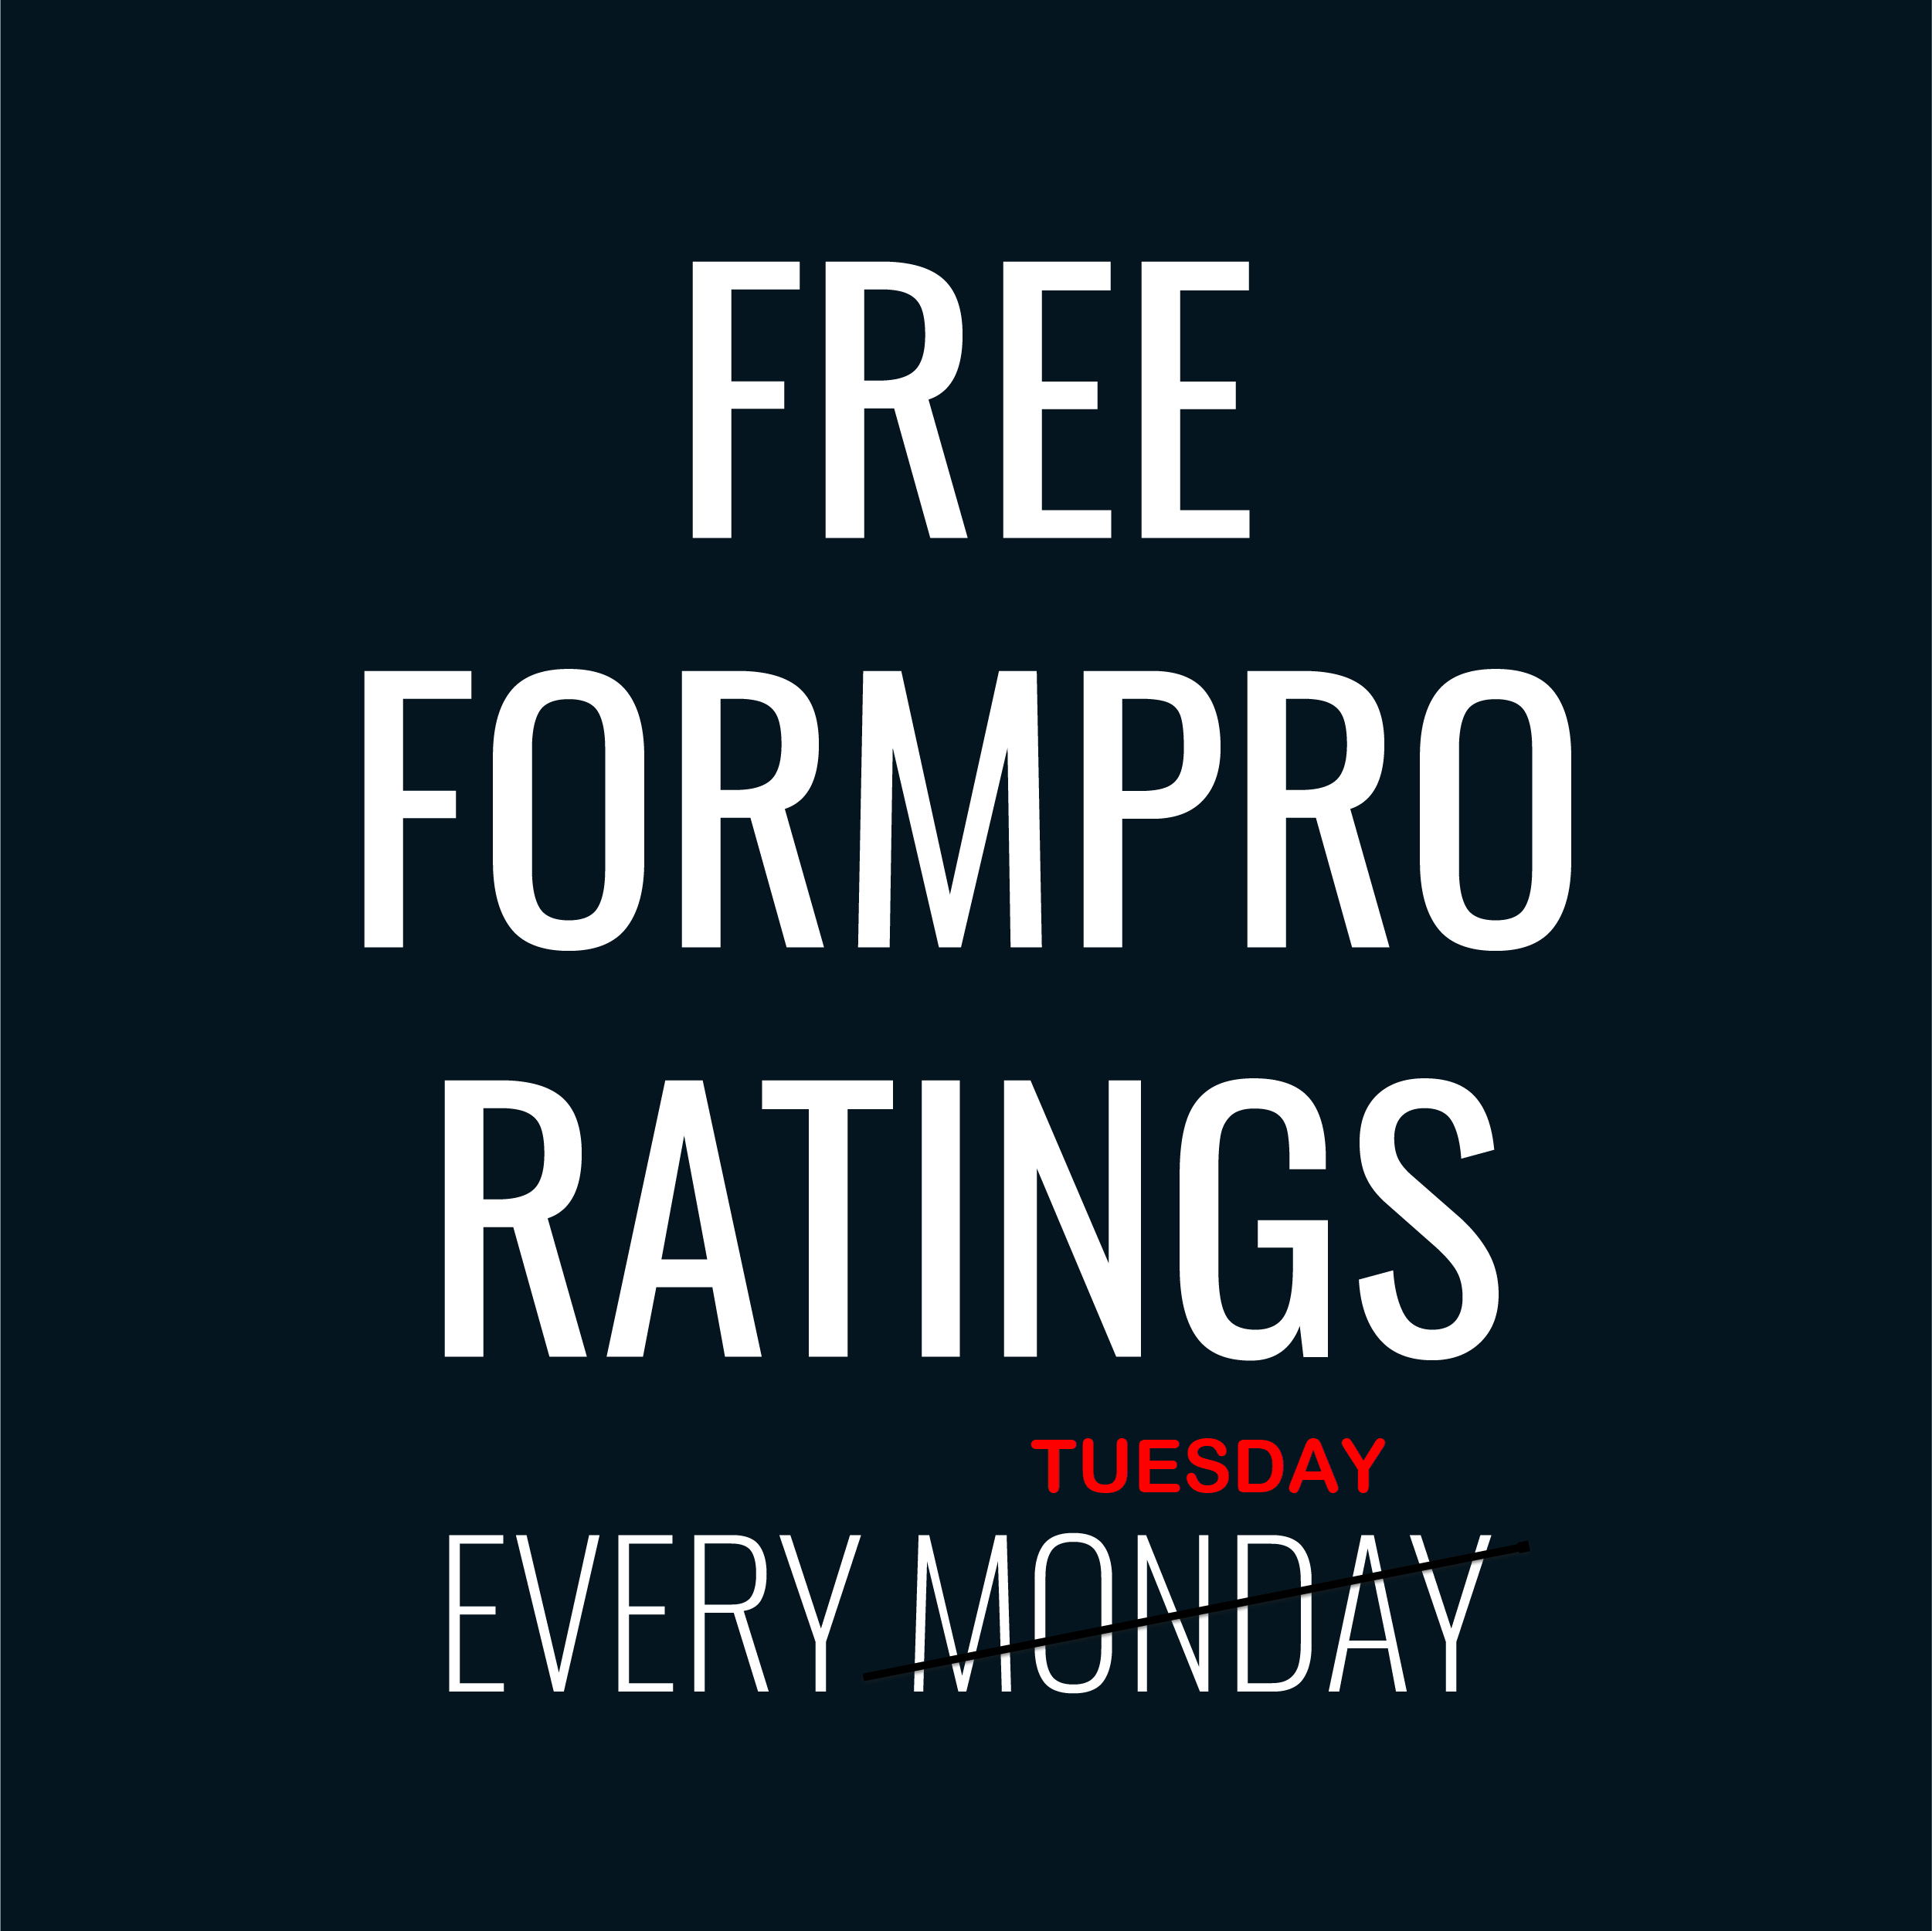 Free Greyhound Ratings Tuesday 23 February 2021